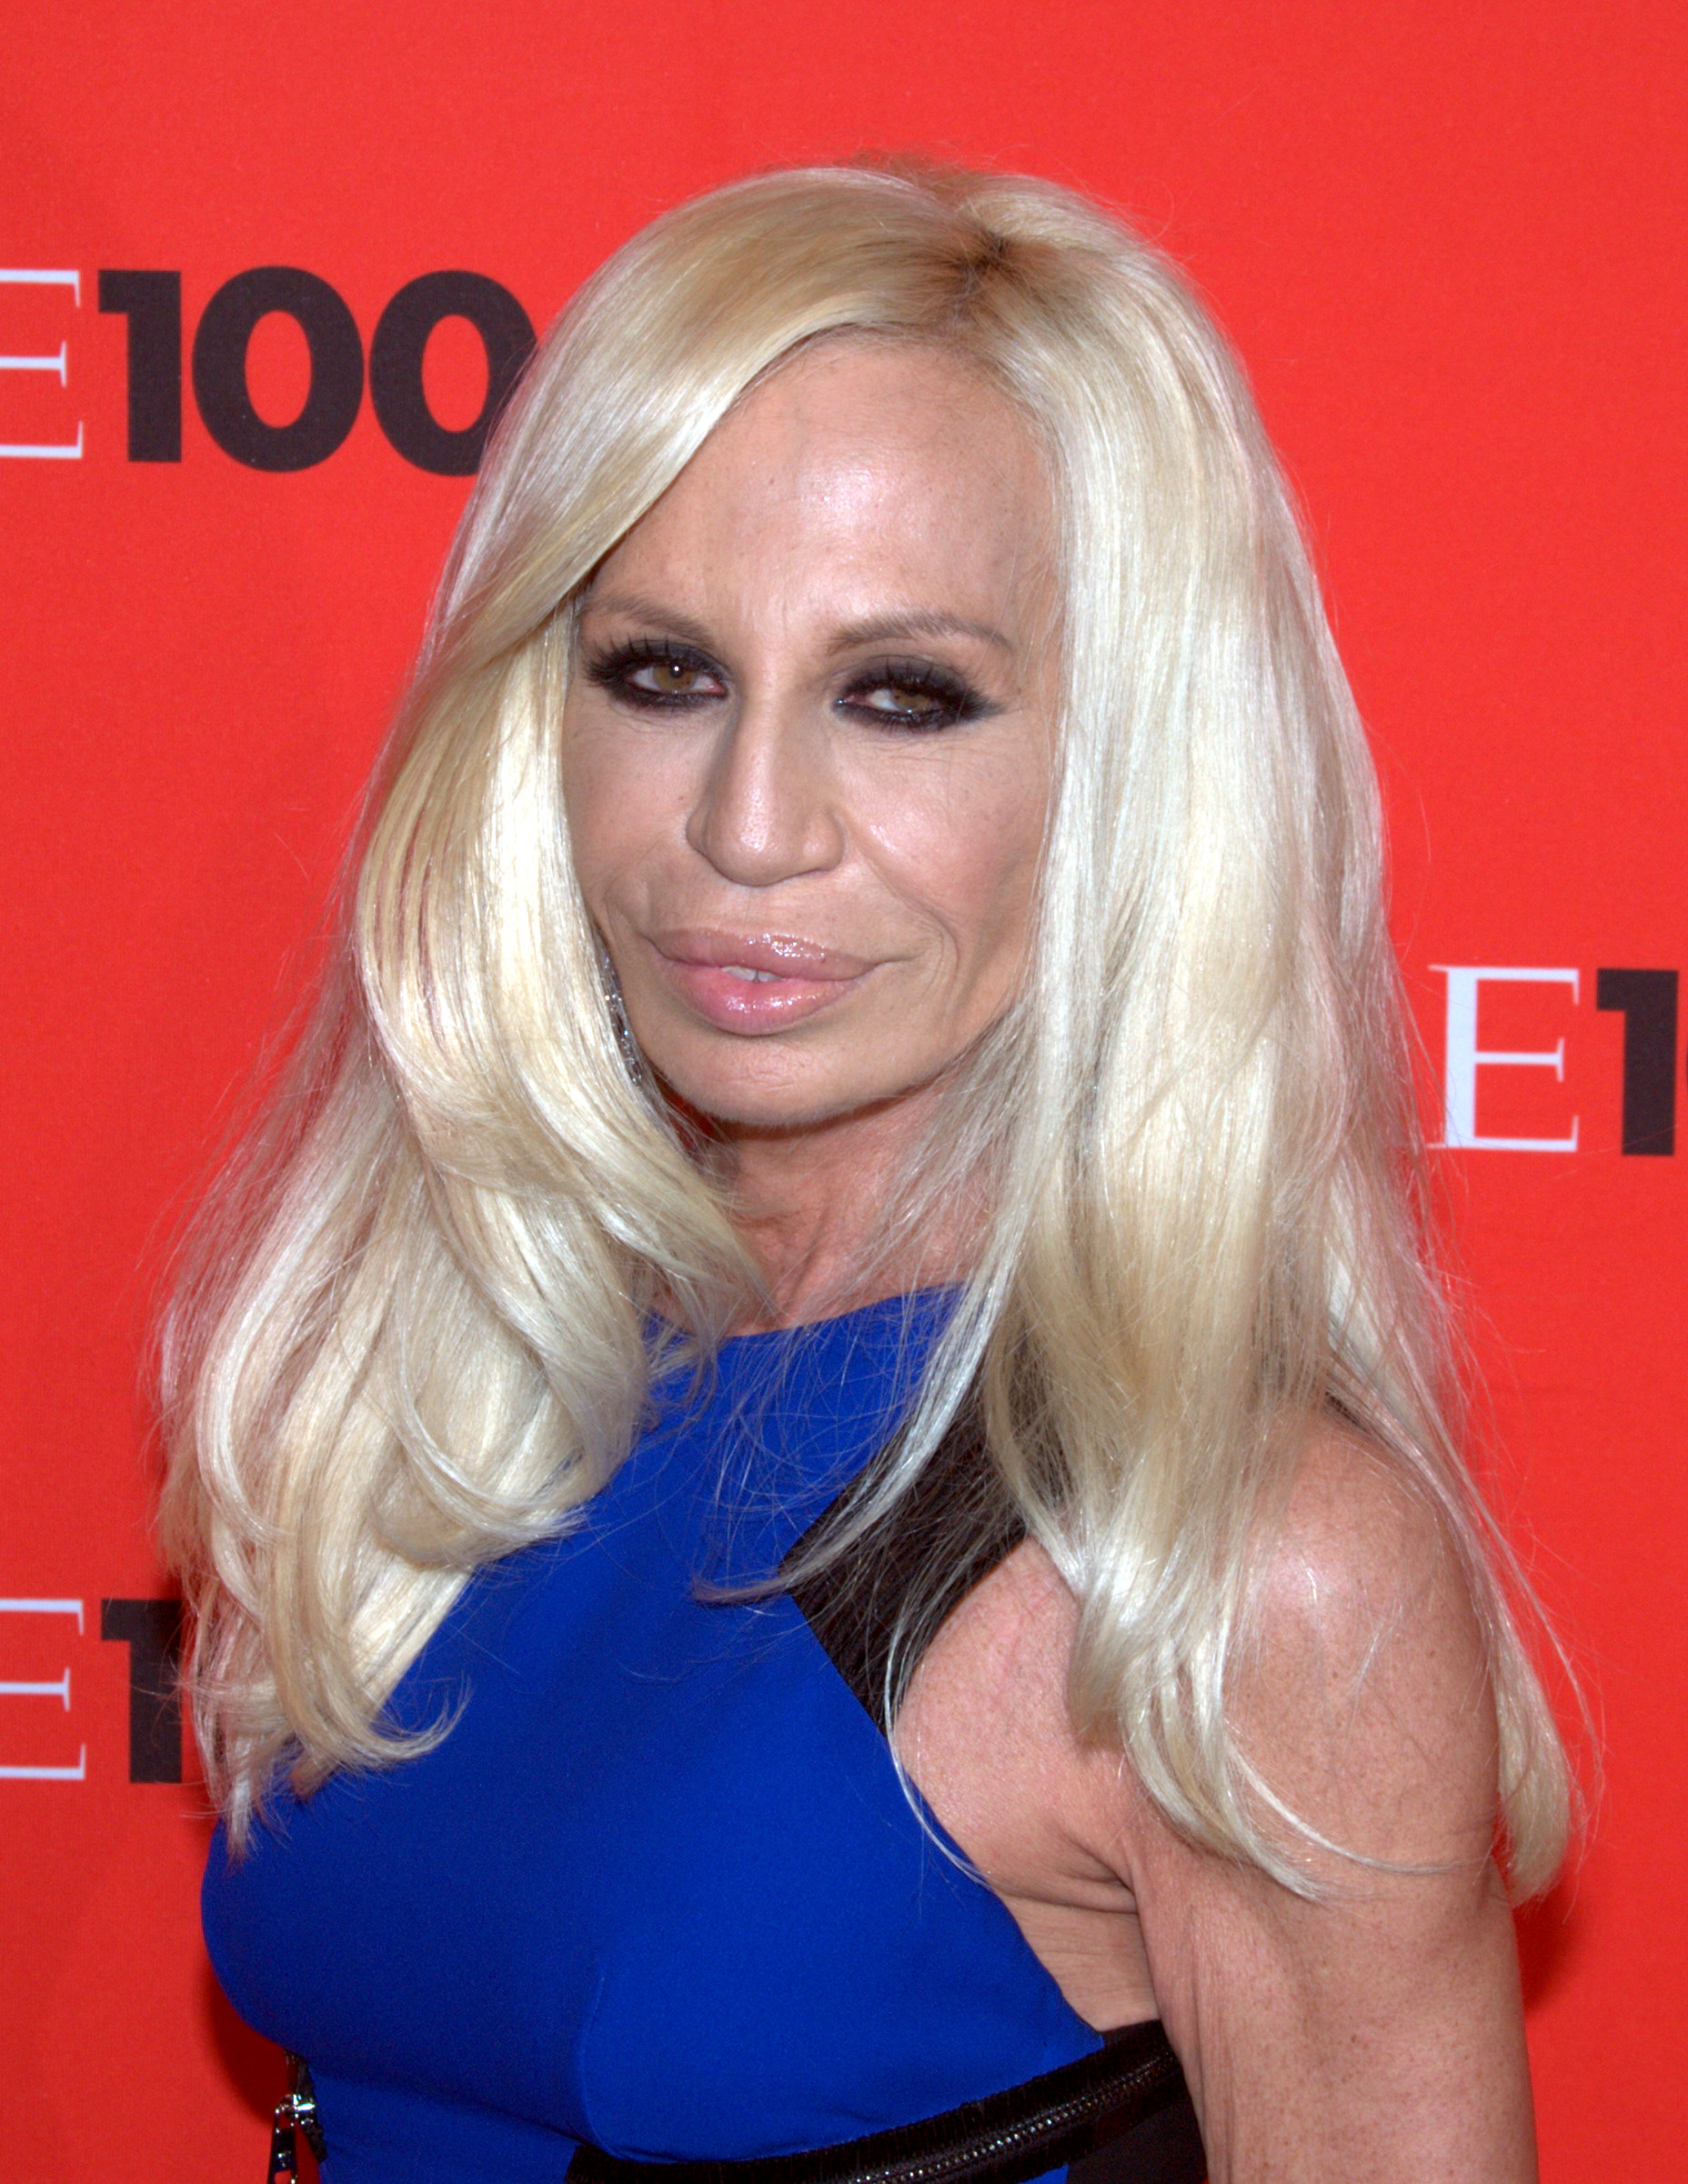 The 63-year old daughter of father Antonio Versace and mother Francesca Versace Donatella Versace in 2018 photo. Donatella Versace earned a  million dollar salary - leaving the net worth at 200 million in 2018